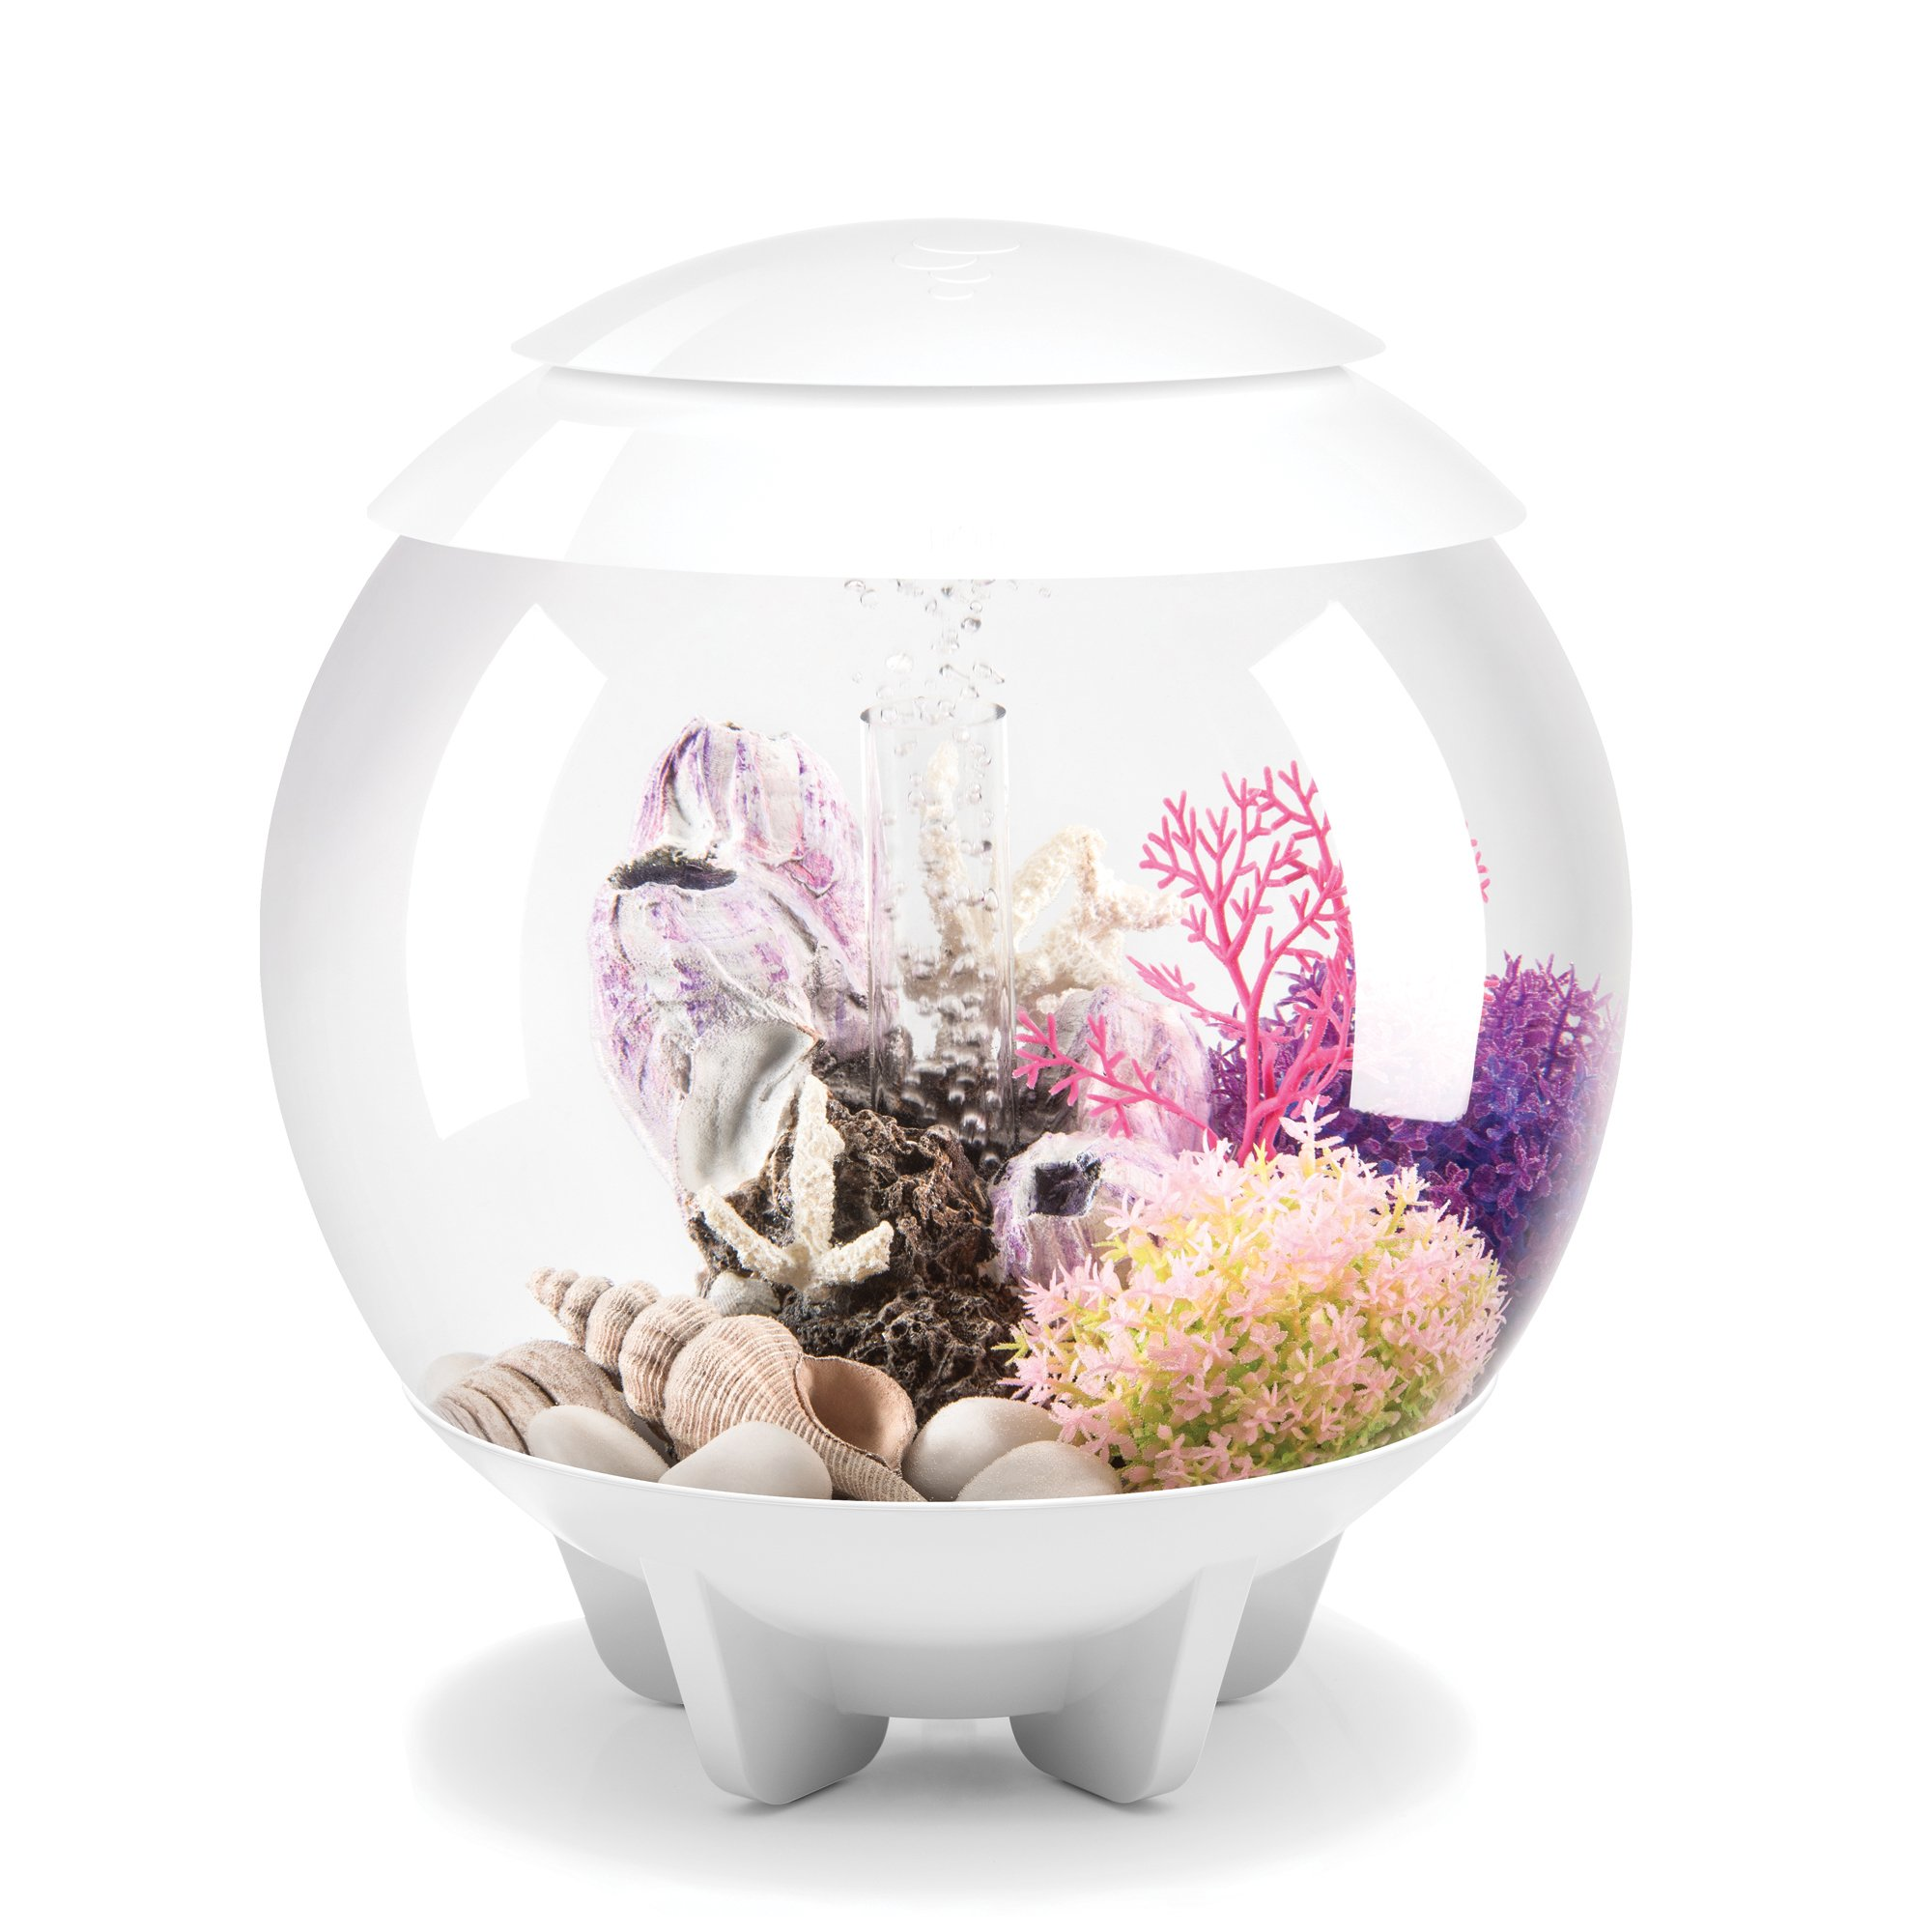 HALO 15 Aquarium with MCR Light - 4 gallon, white by biOrb